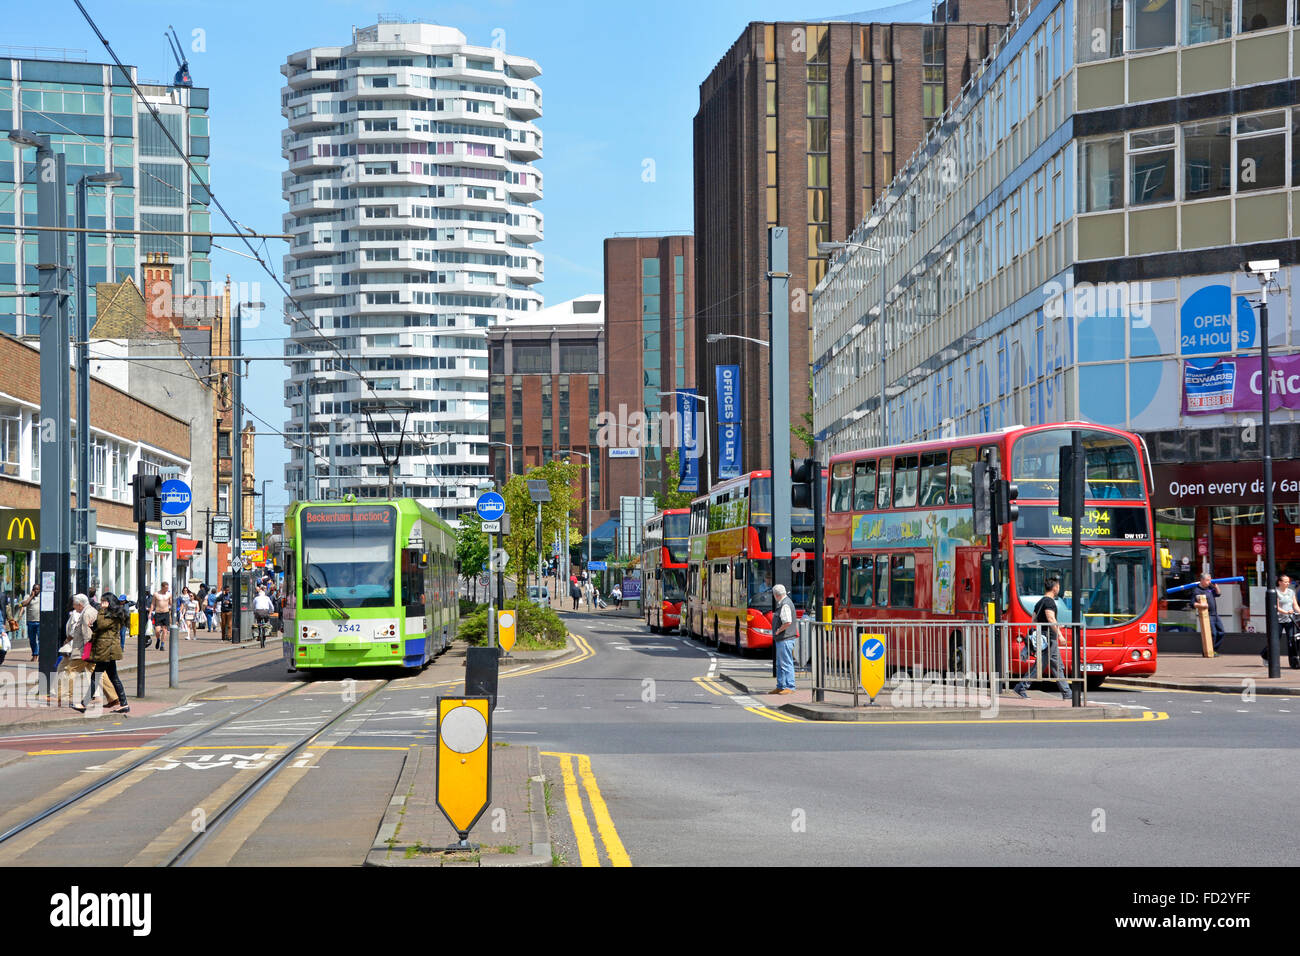 Croydon town centre with tram & bus transport services and the No. 1 Croydon building NLA Tower beyond South - Stock Image